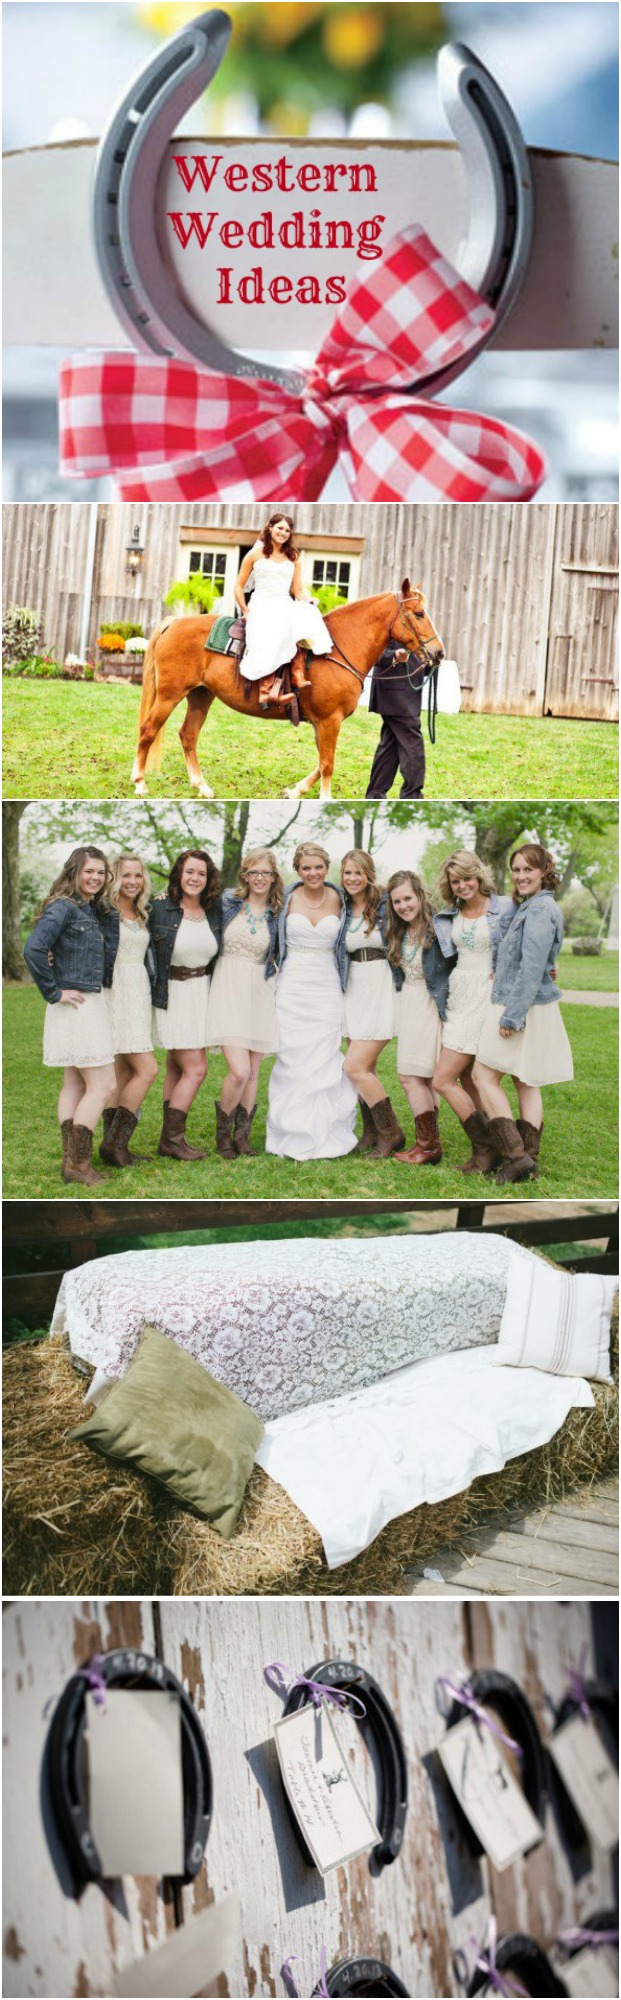 wedding ideas for august western wedding ideas rustic wedding chic 27864